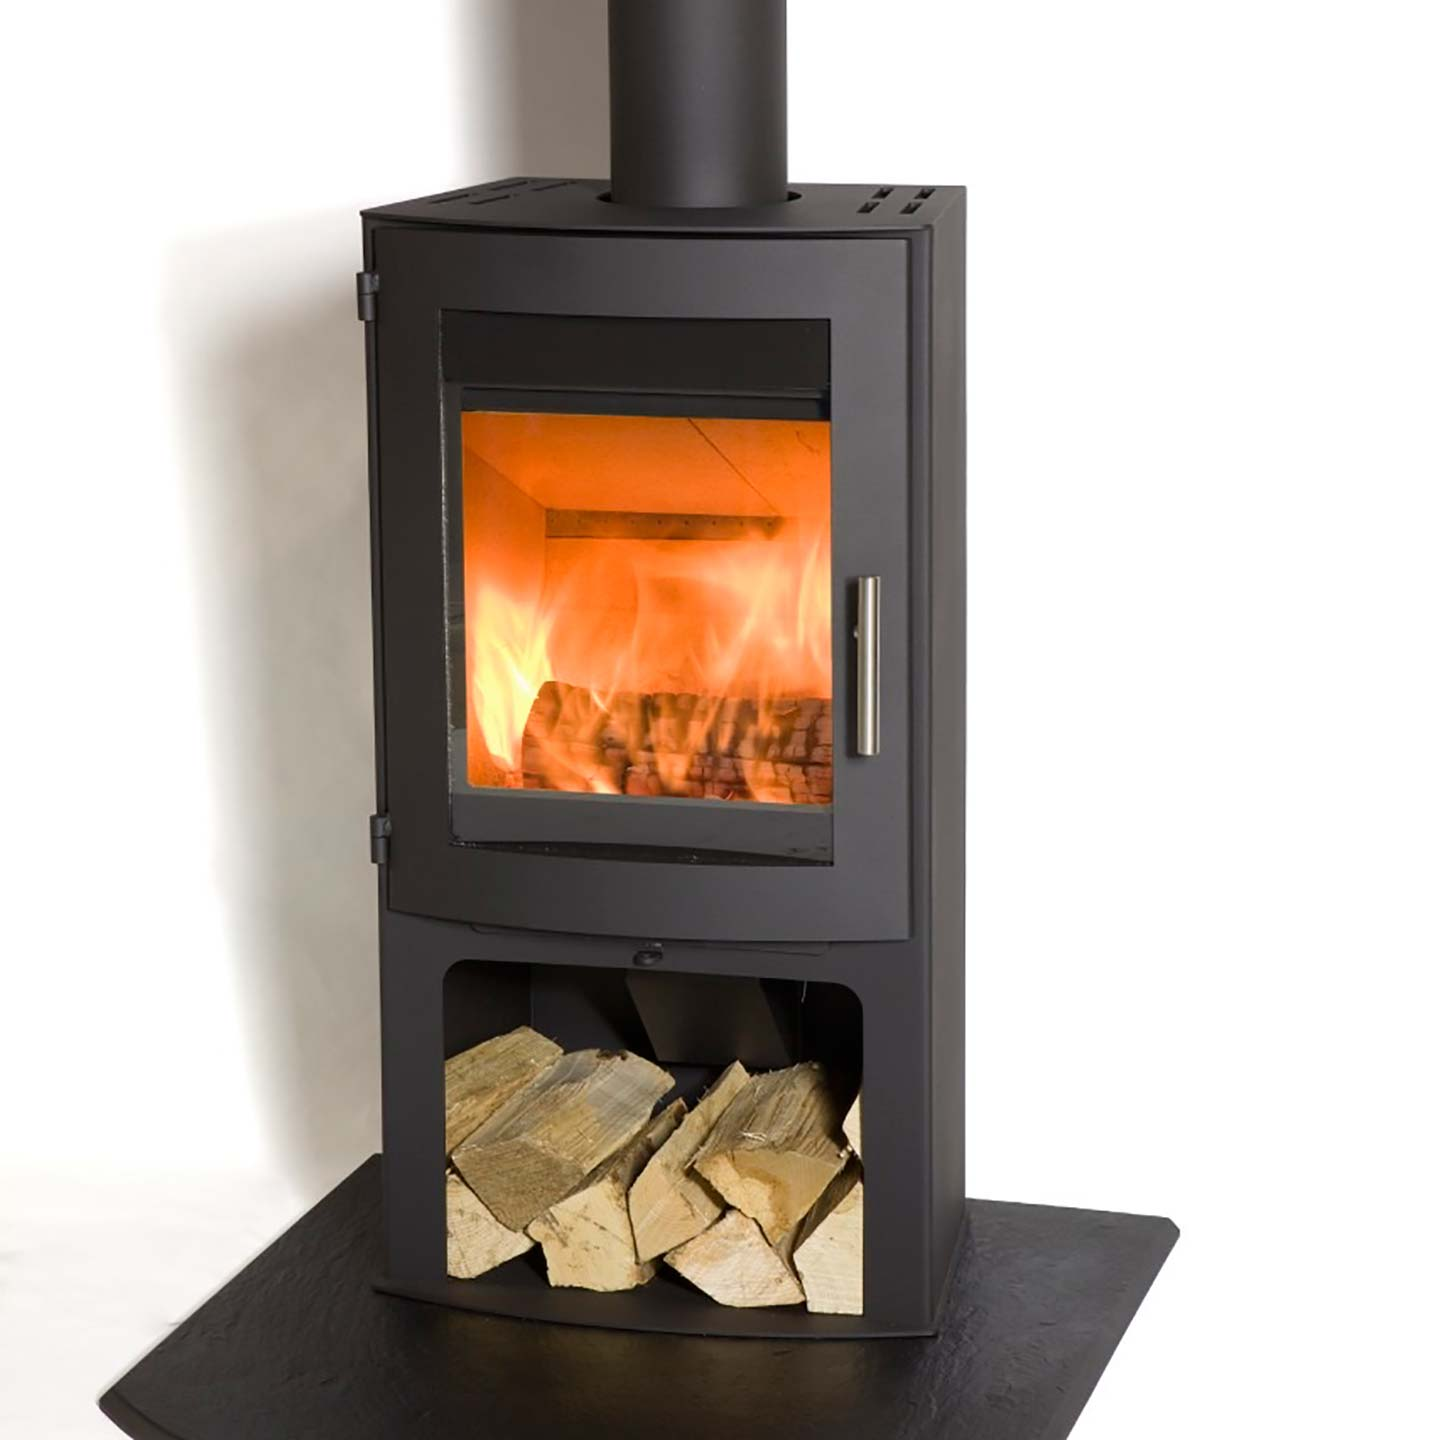 Westfire Uniq 18 Wood Burning Stove The Stove Site